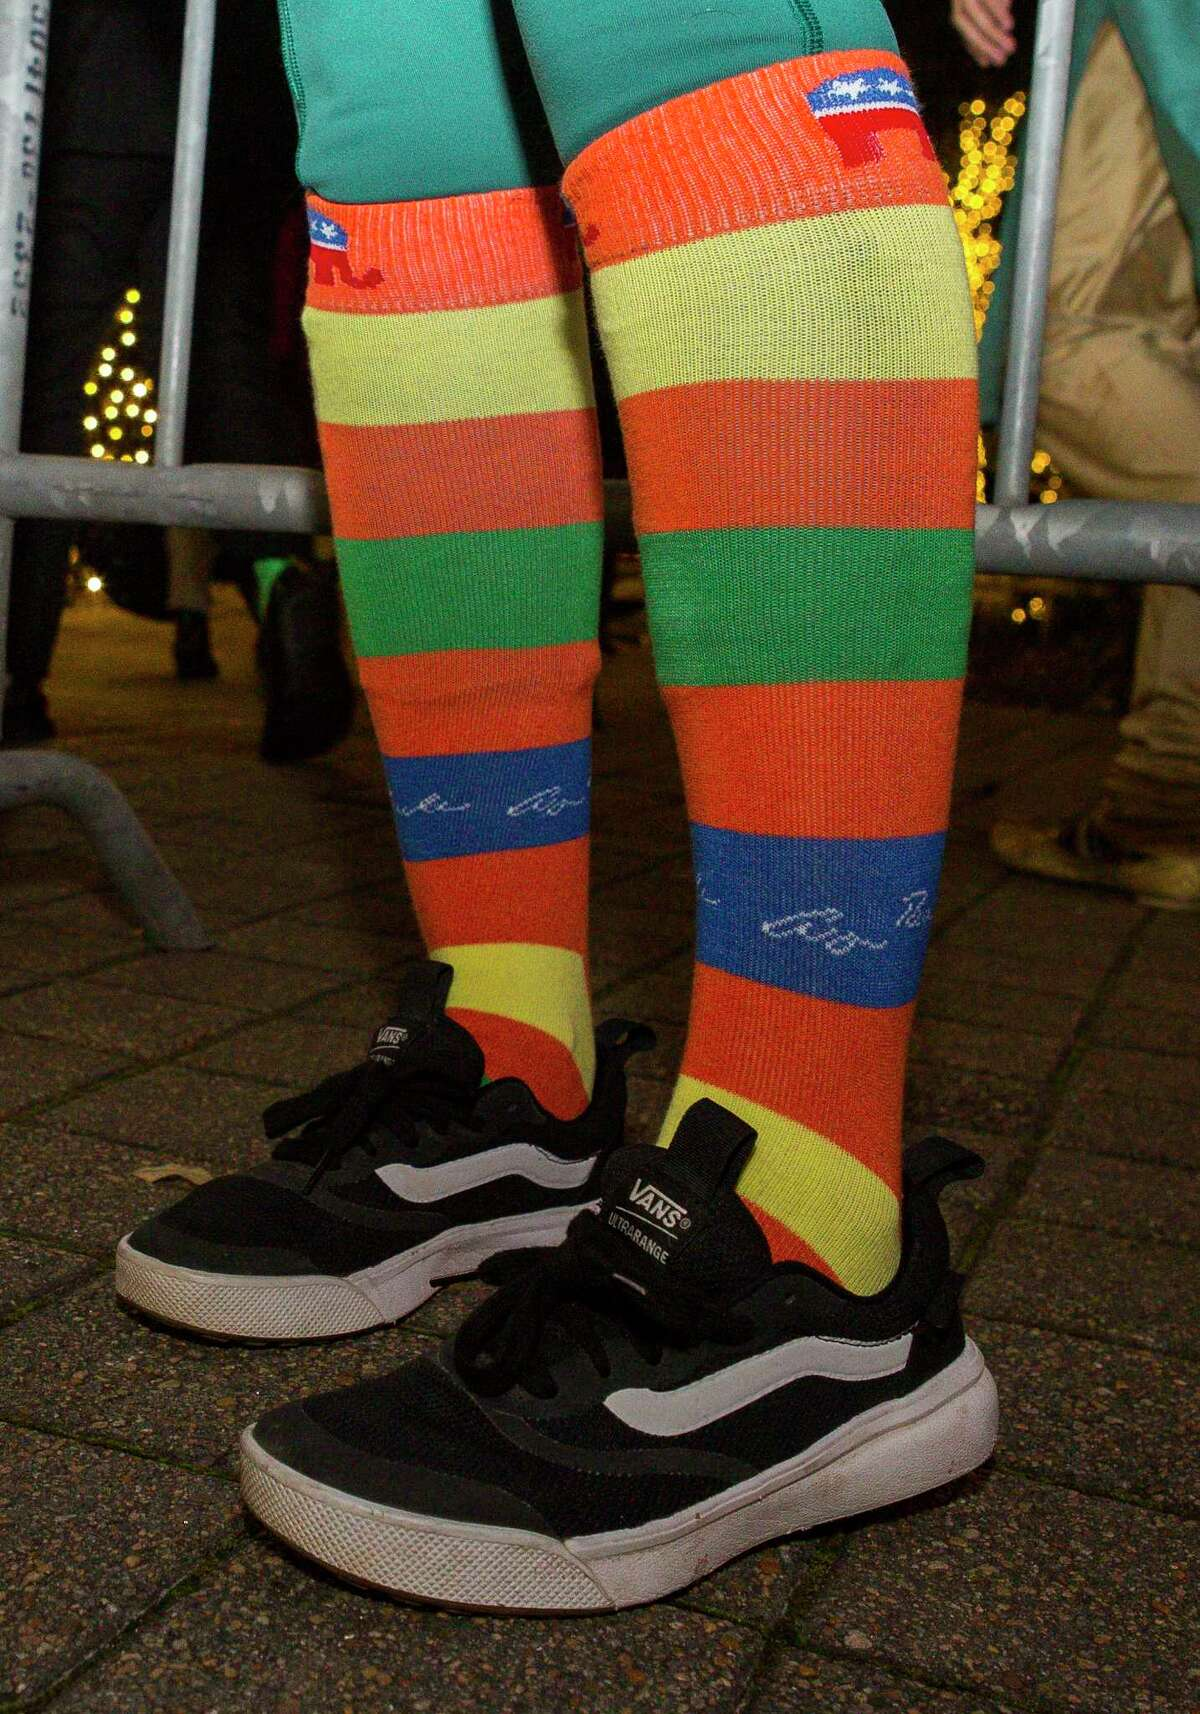 Lorie Fortson wears George H.W. Bush socks during a tribute to President George H.W. Bush at City Hall in Houston, Monday, Dec. 3, 2018 in Houston.